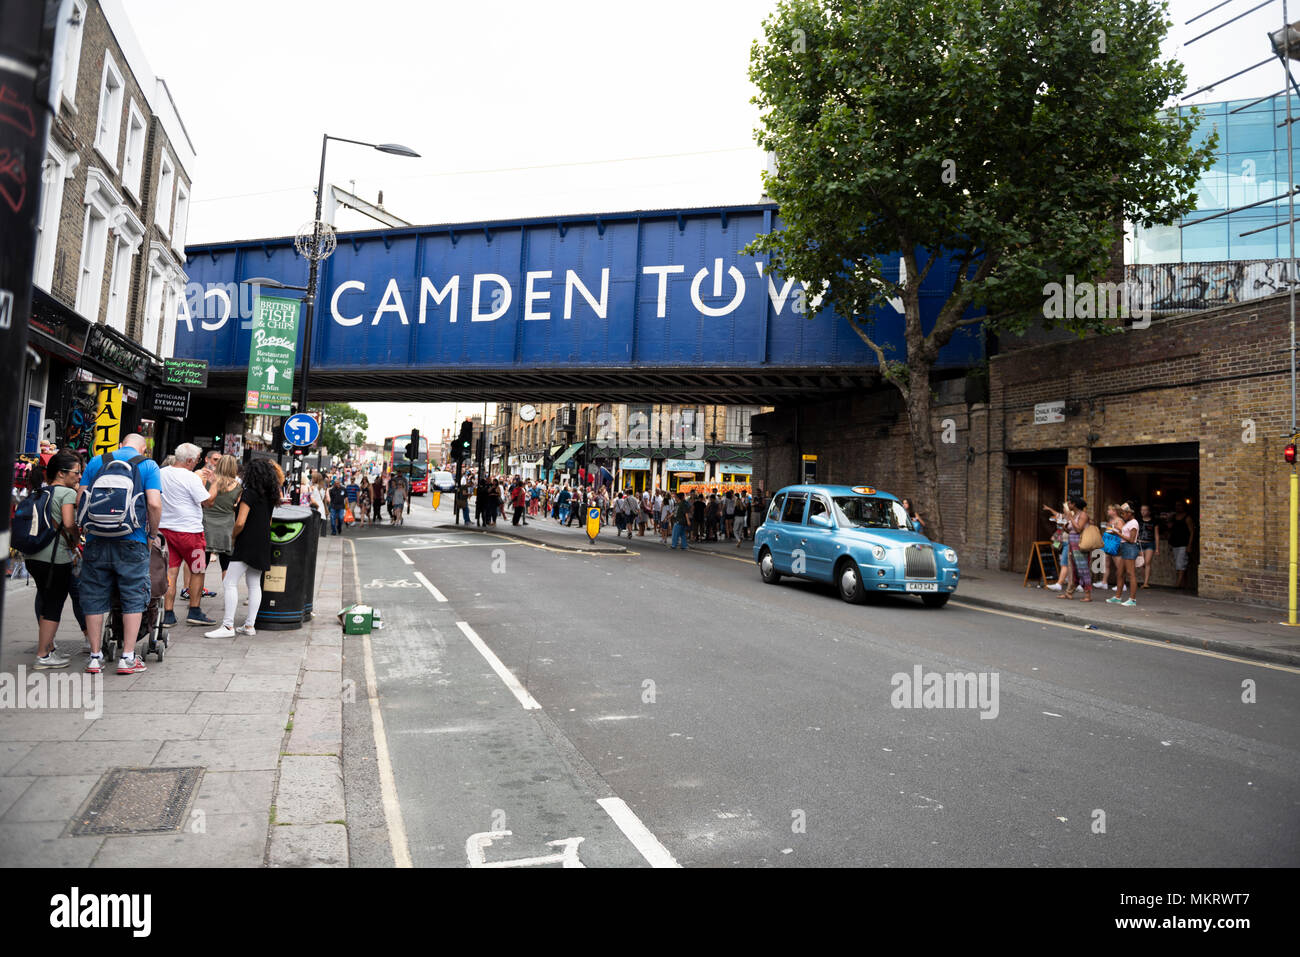 Blue taxicab drives through Chalk Farm road passing by the Camden Town railway bridge in Camden Town, London, UK. - Stock Image